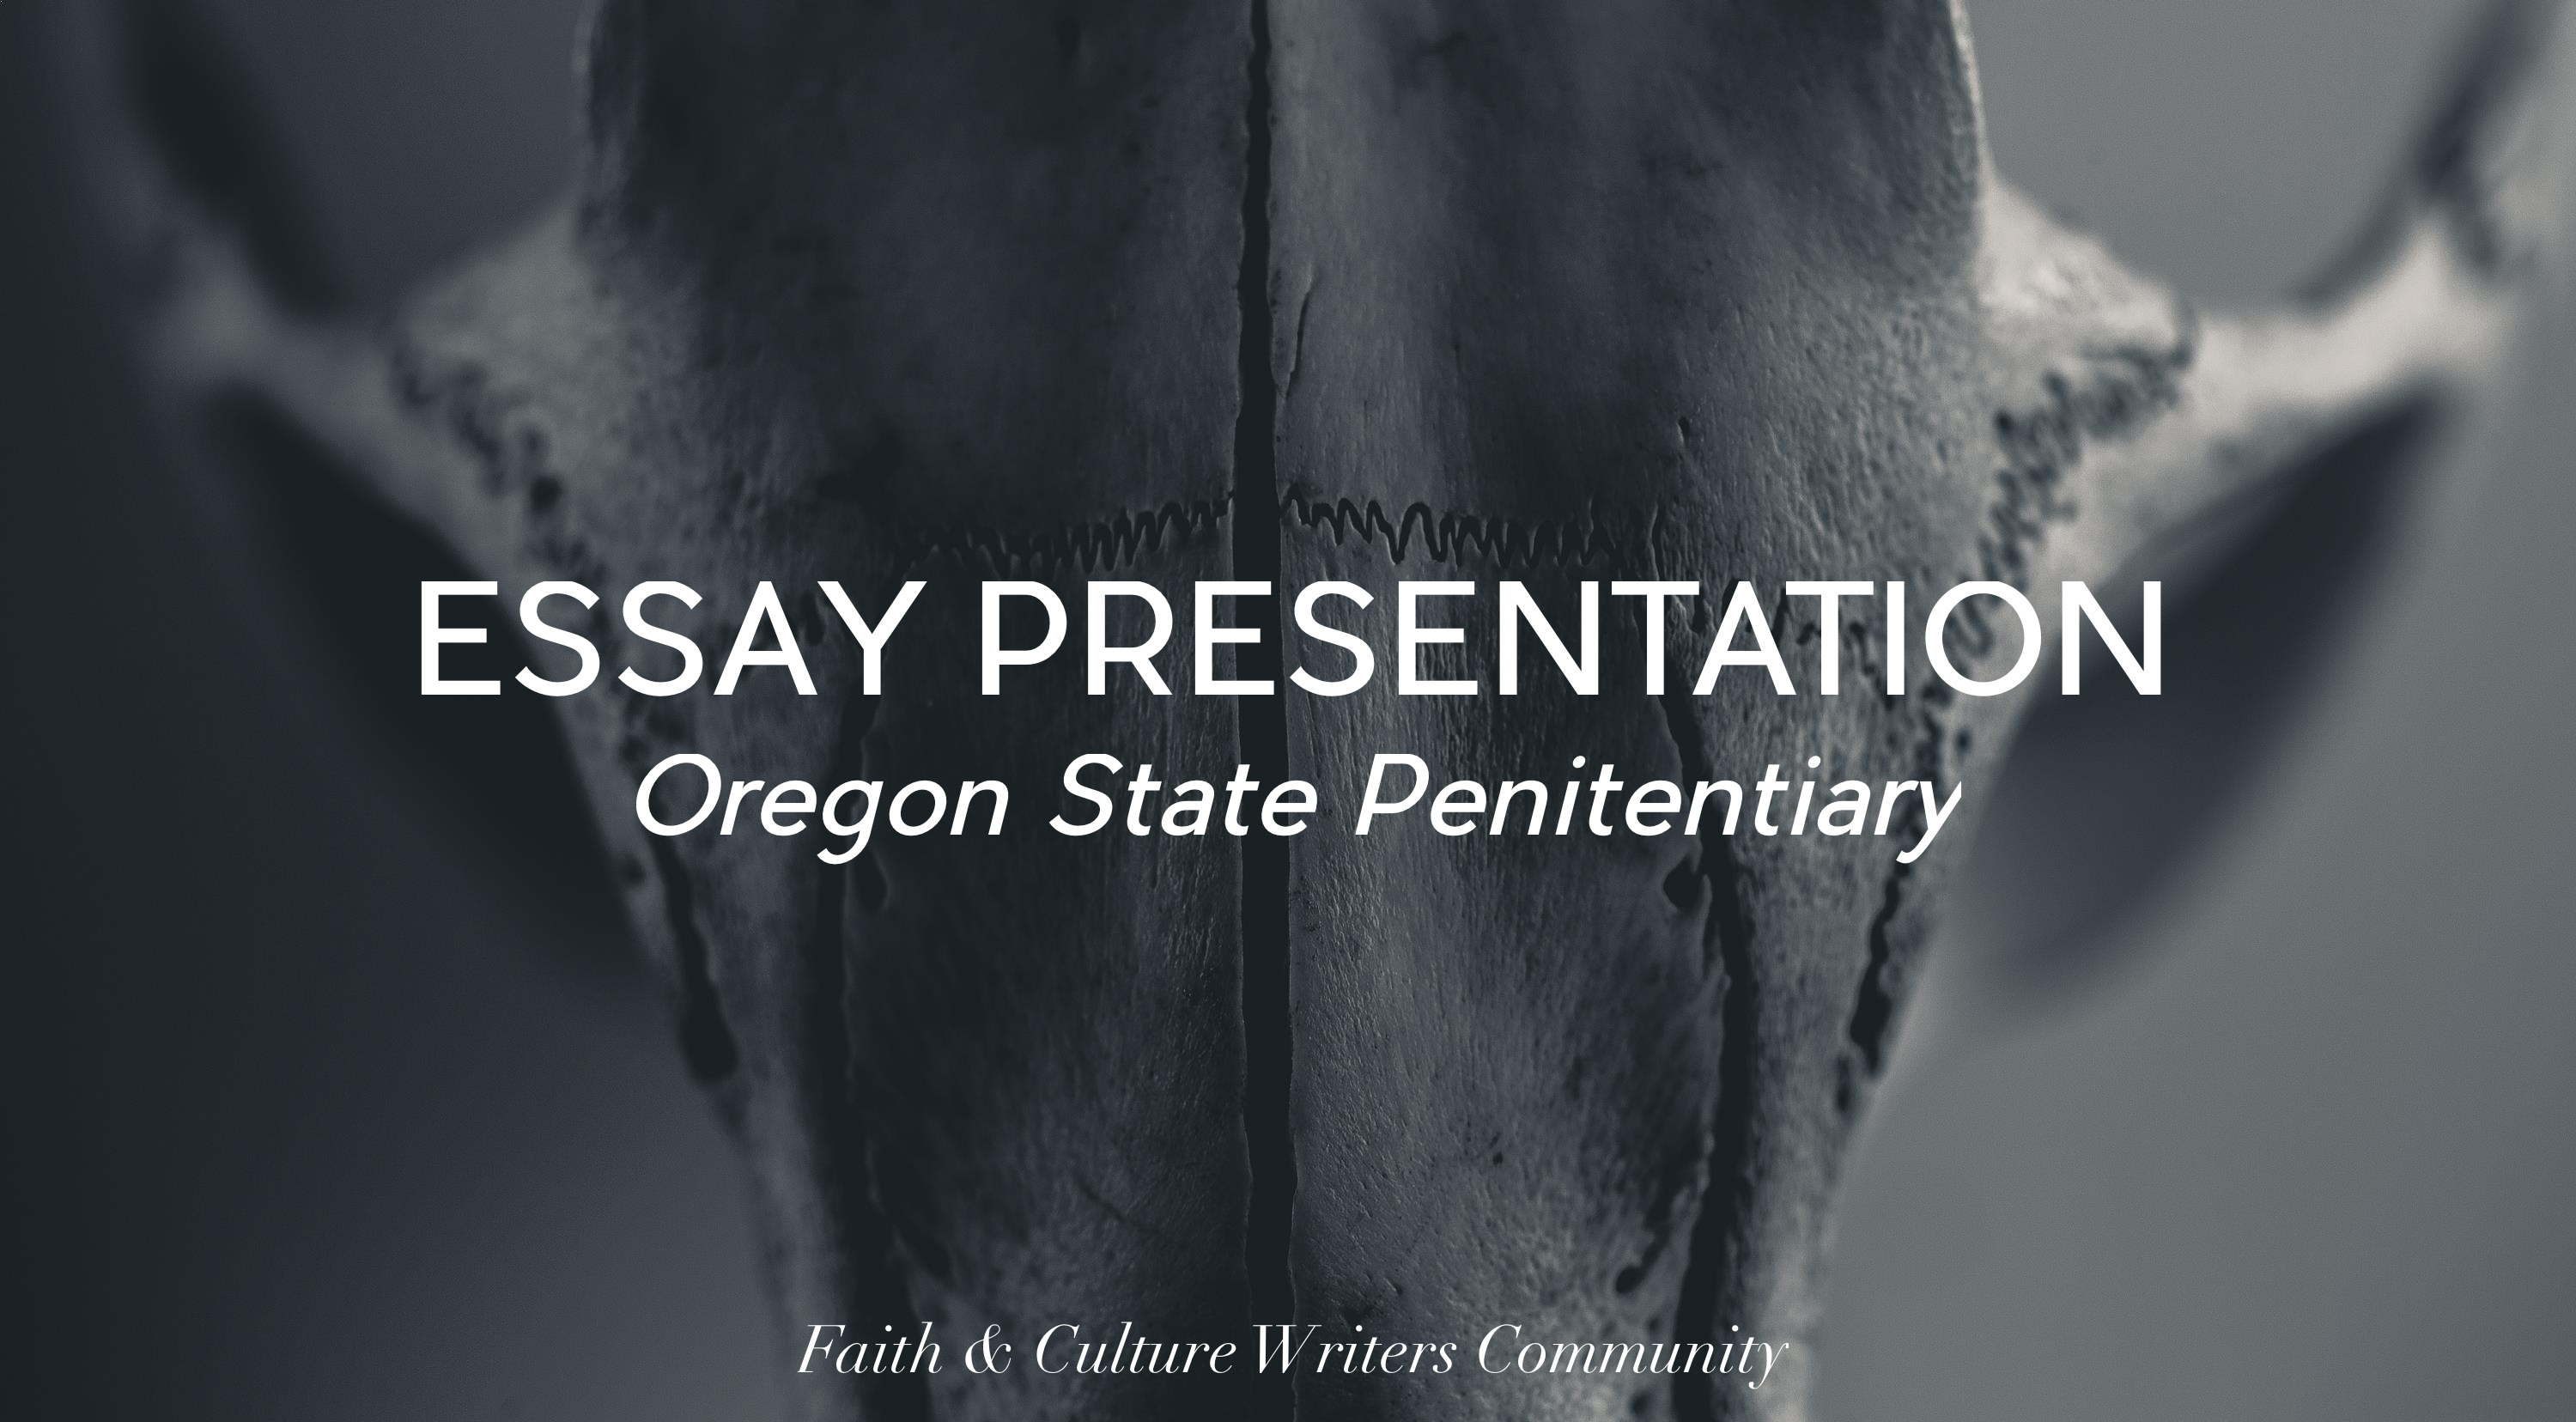 Oregon state university admissions essay prompt